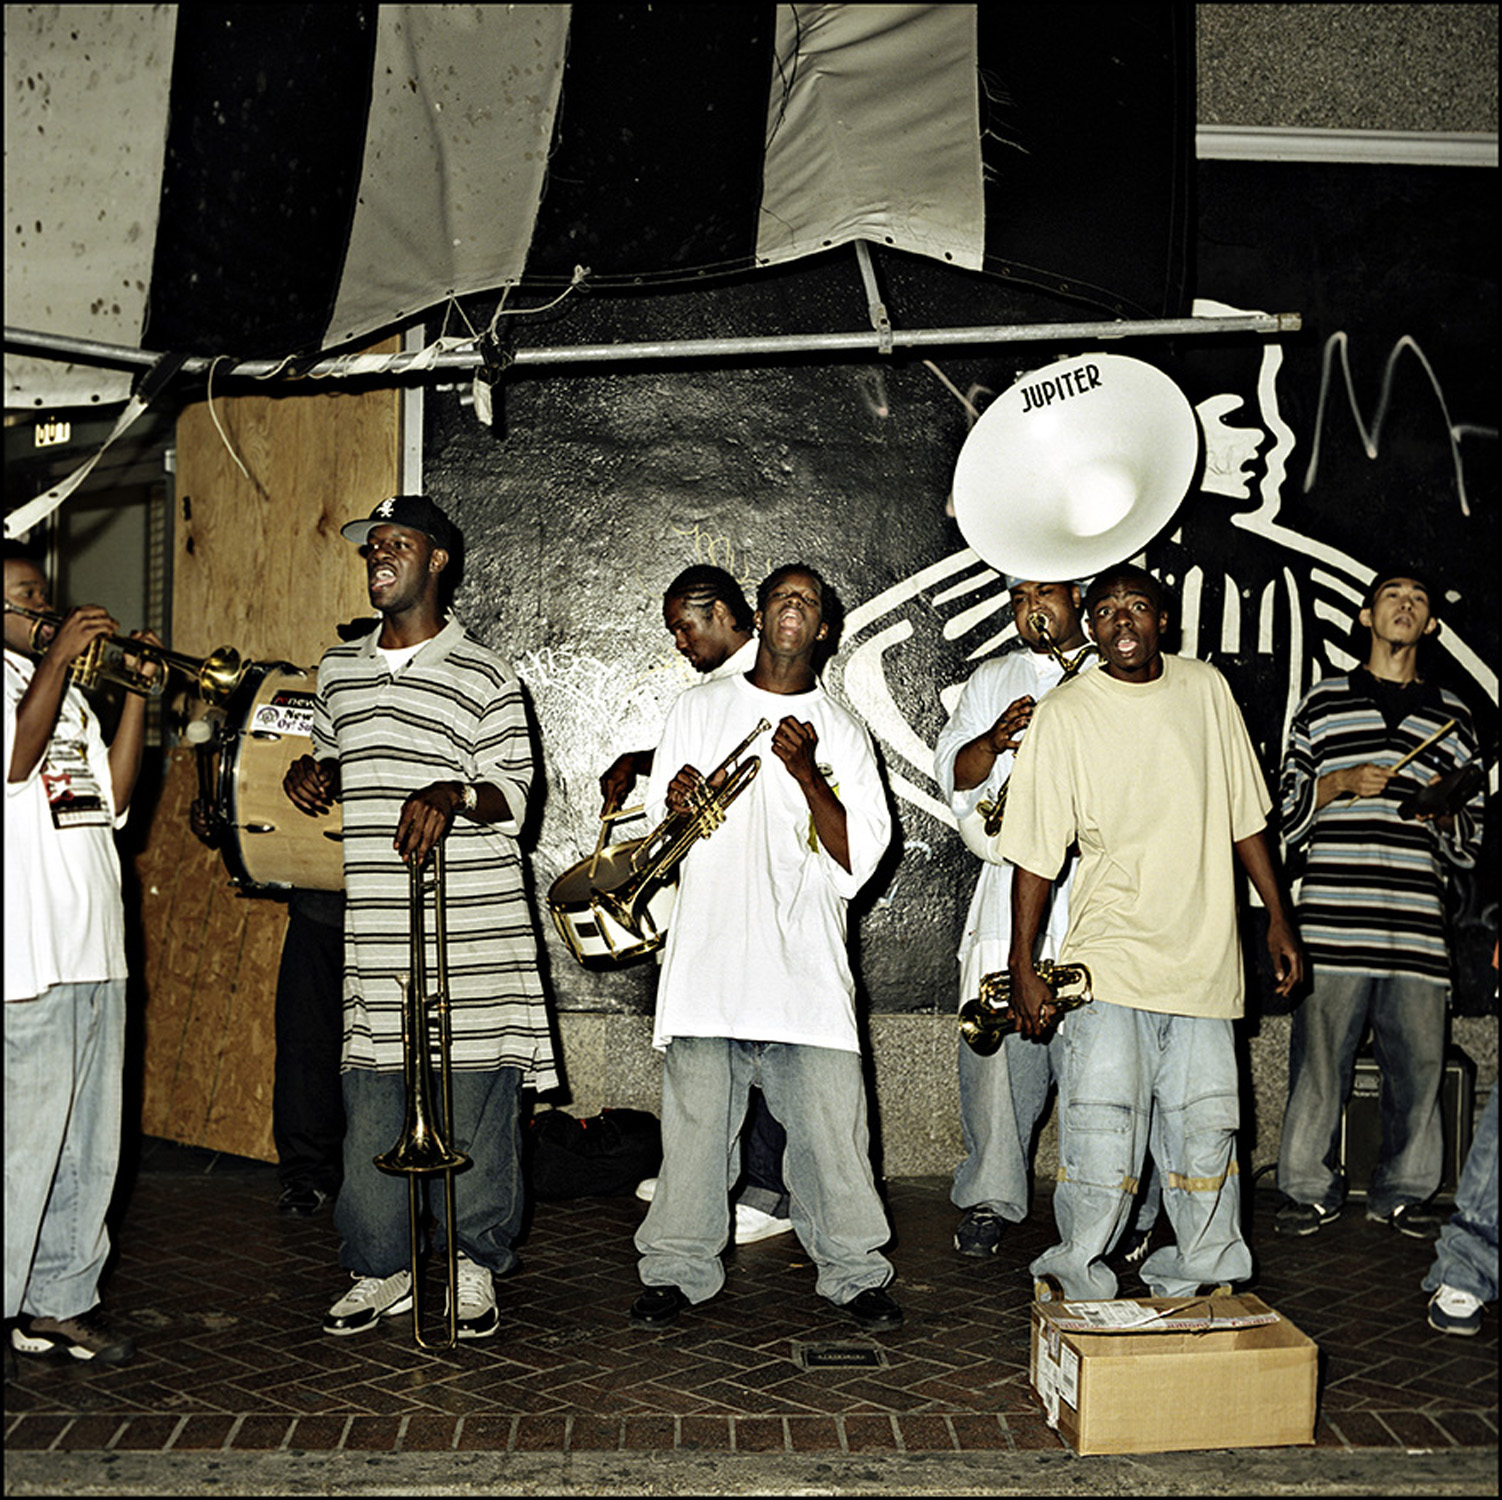 The Day the Music Died: New Orleans after Hurricane Katrina.